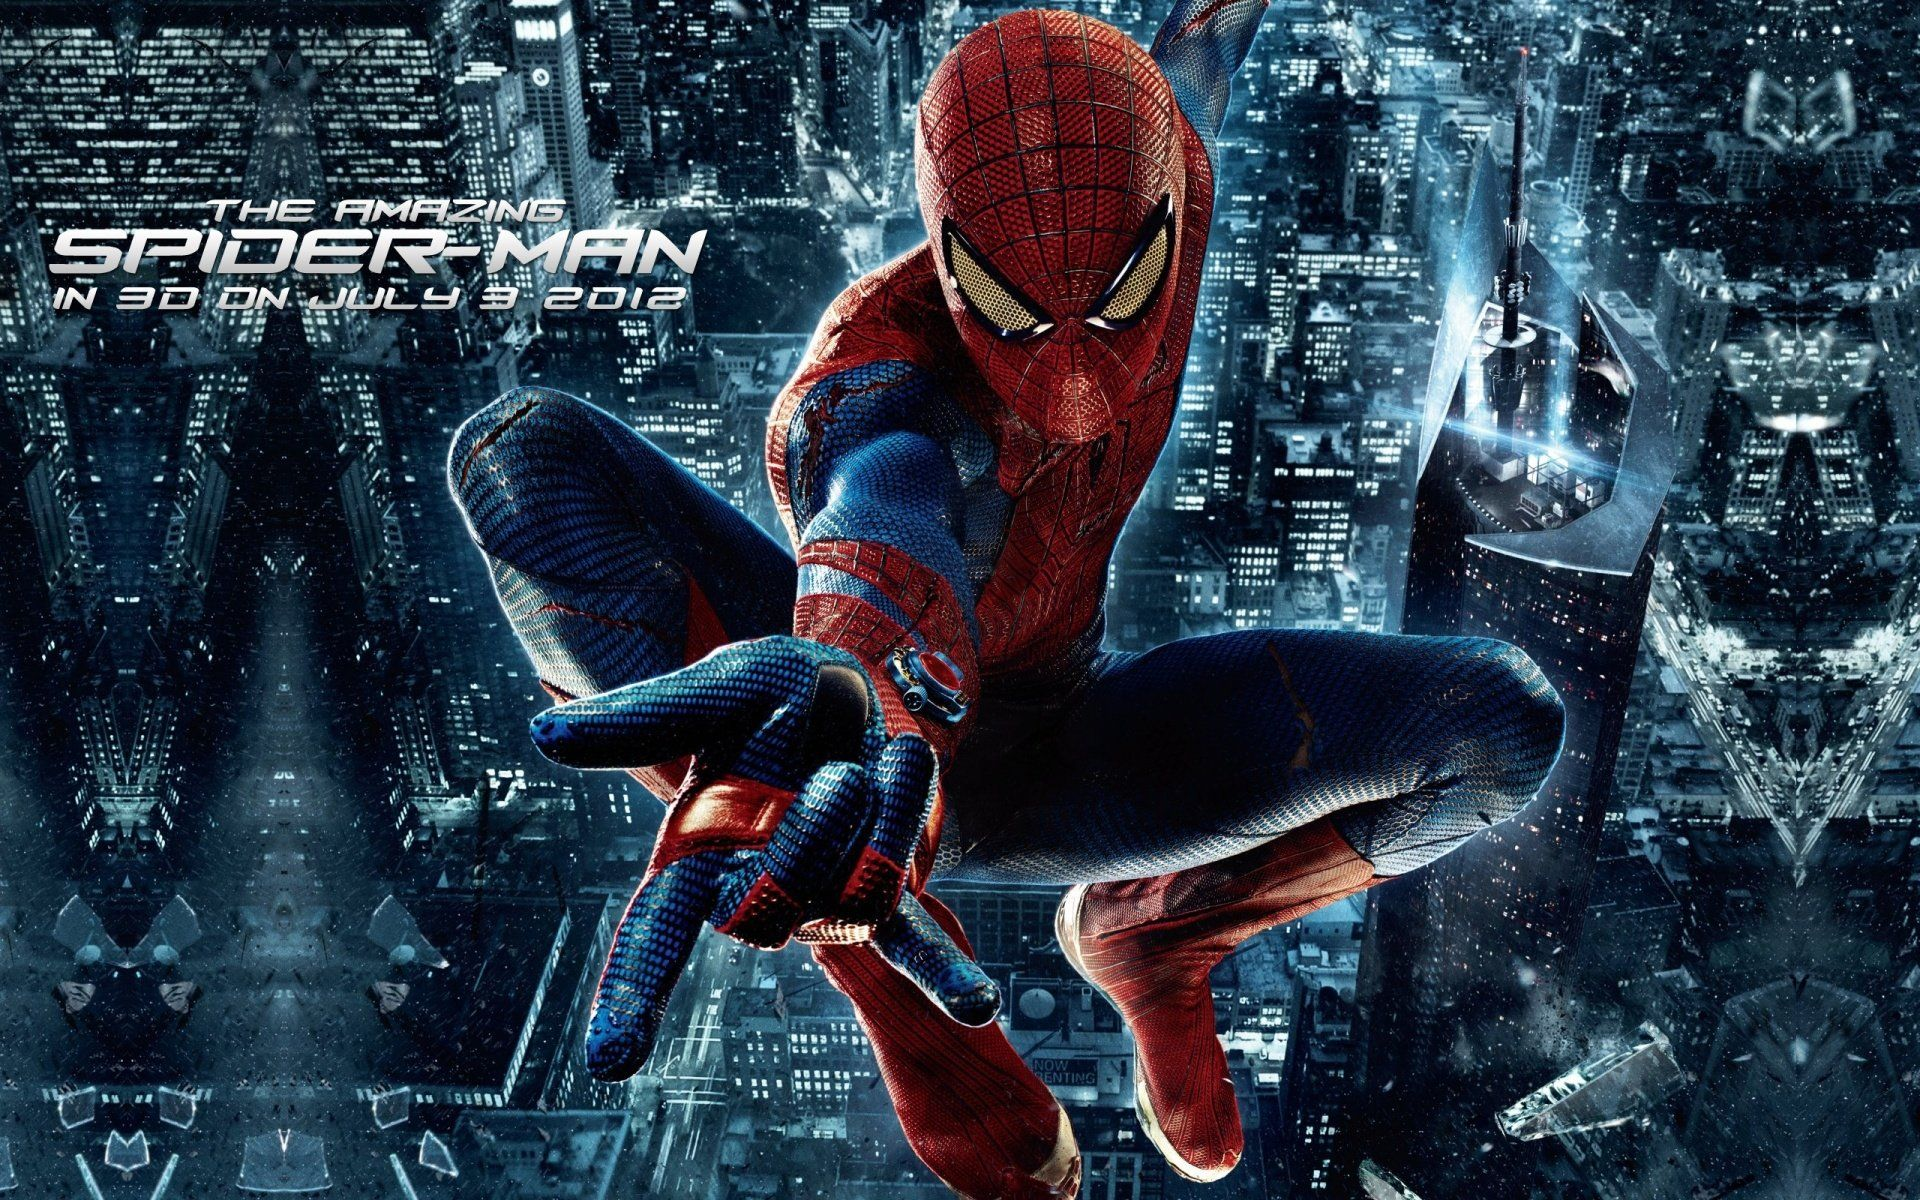 Hd wallpaper man - Spiderman Hd Wallpapers Backgrounds Wallpaper Page